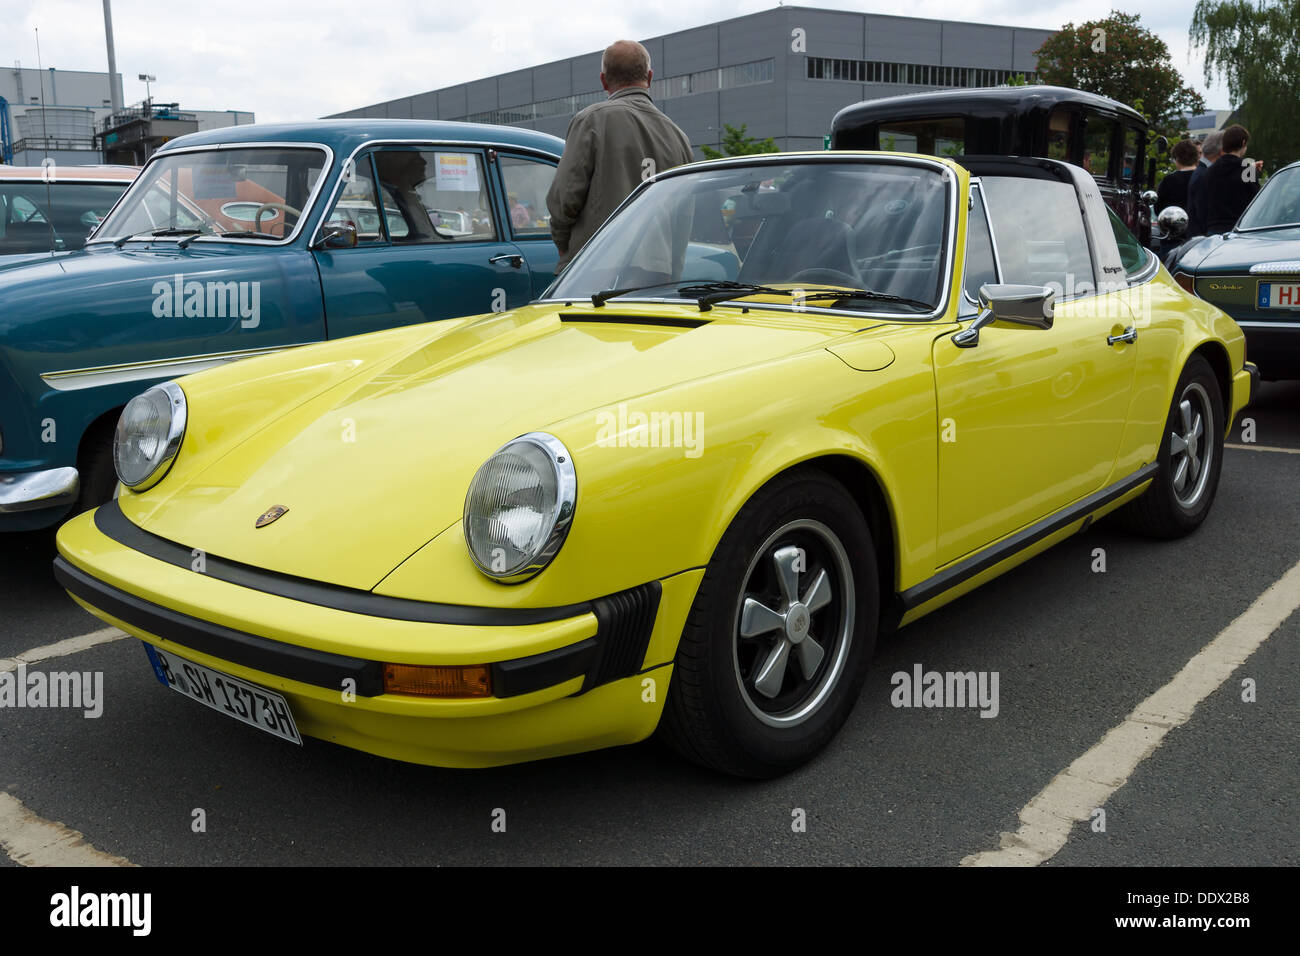 berlin germany may 11 the porsche 911 targa front view 26 stock photo royalty free image. Black Bedroom Furniture Sets. Home Design Ideas